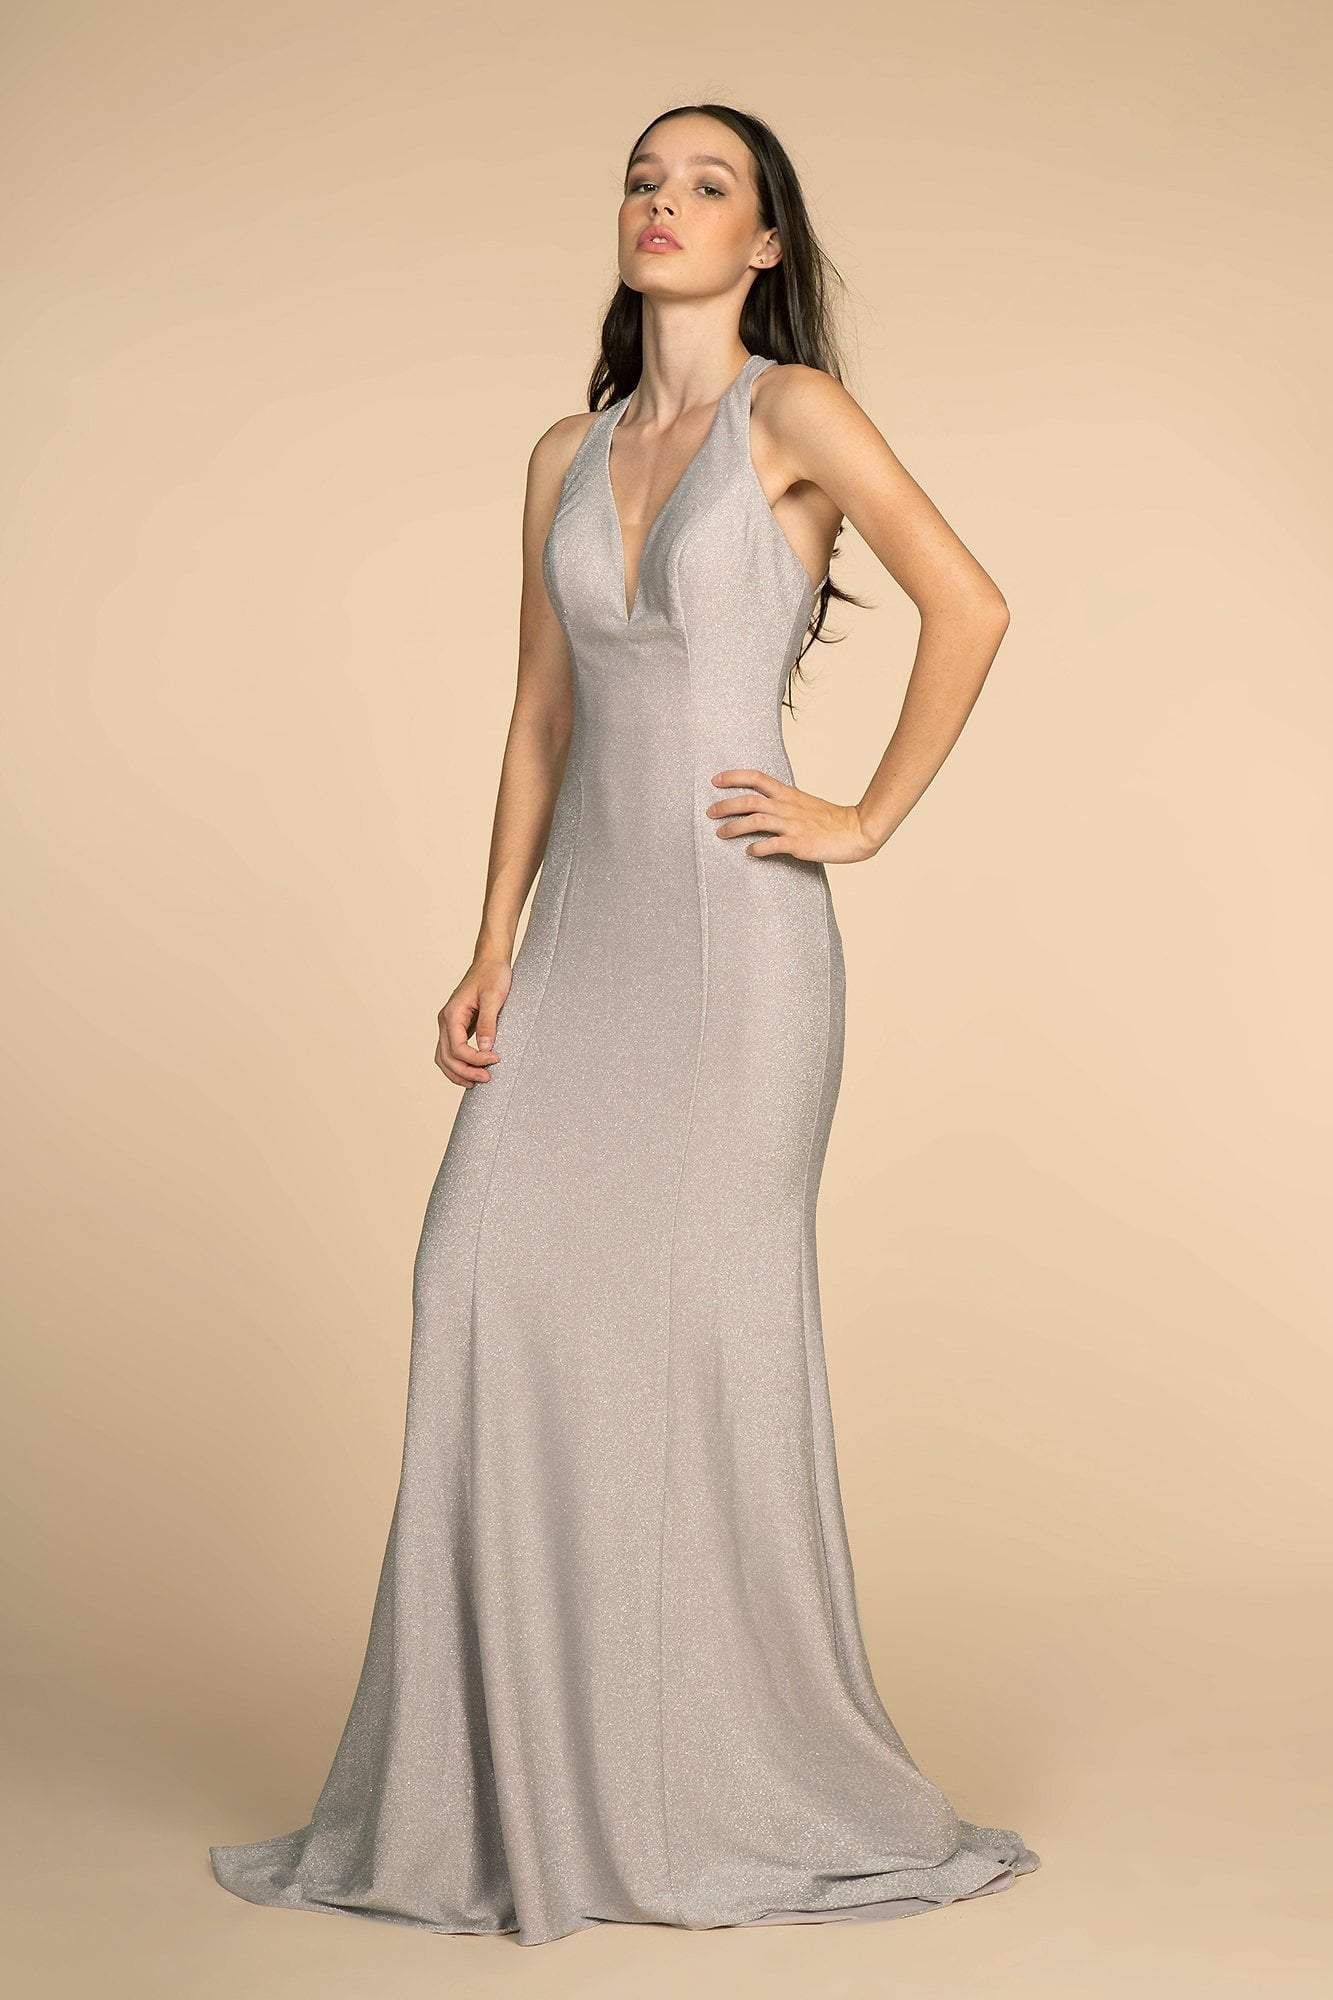 Elizabeth K - GL2549 V-neck Shimmer Fabric Mermaid Dress Special Occasion Dress XS / Silver